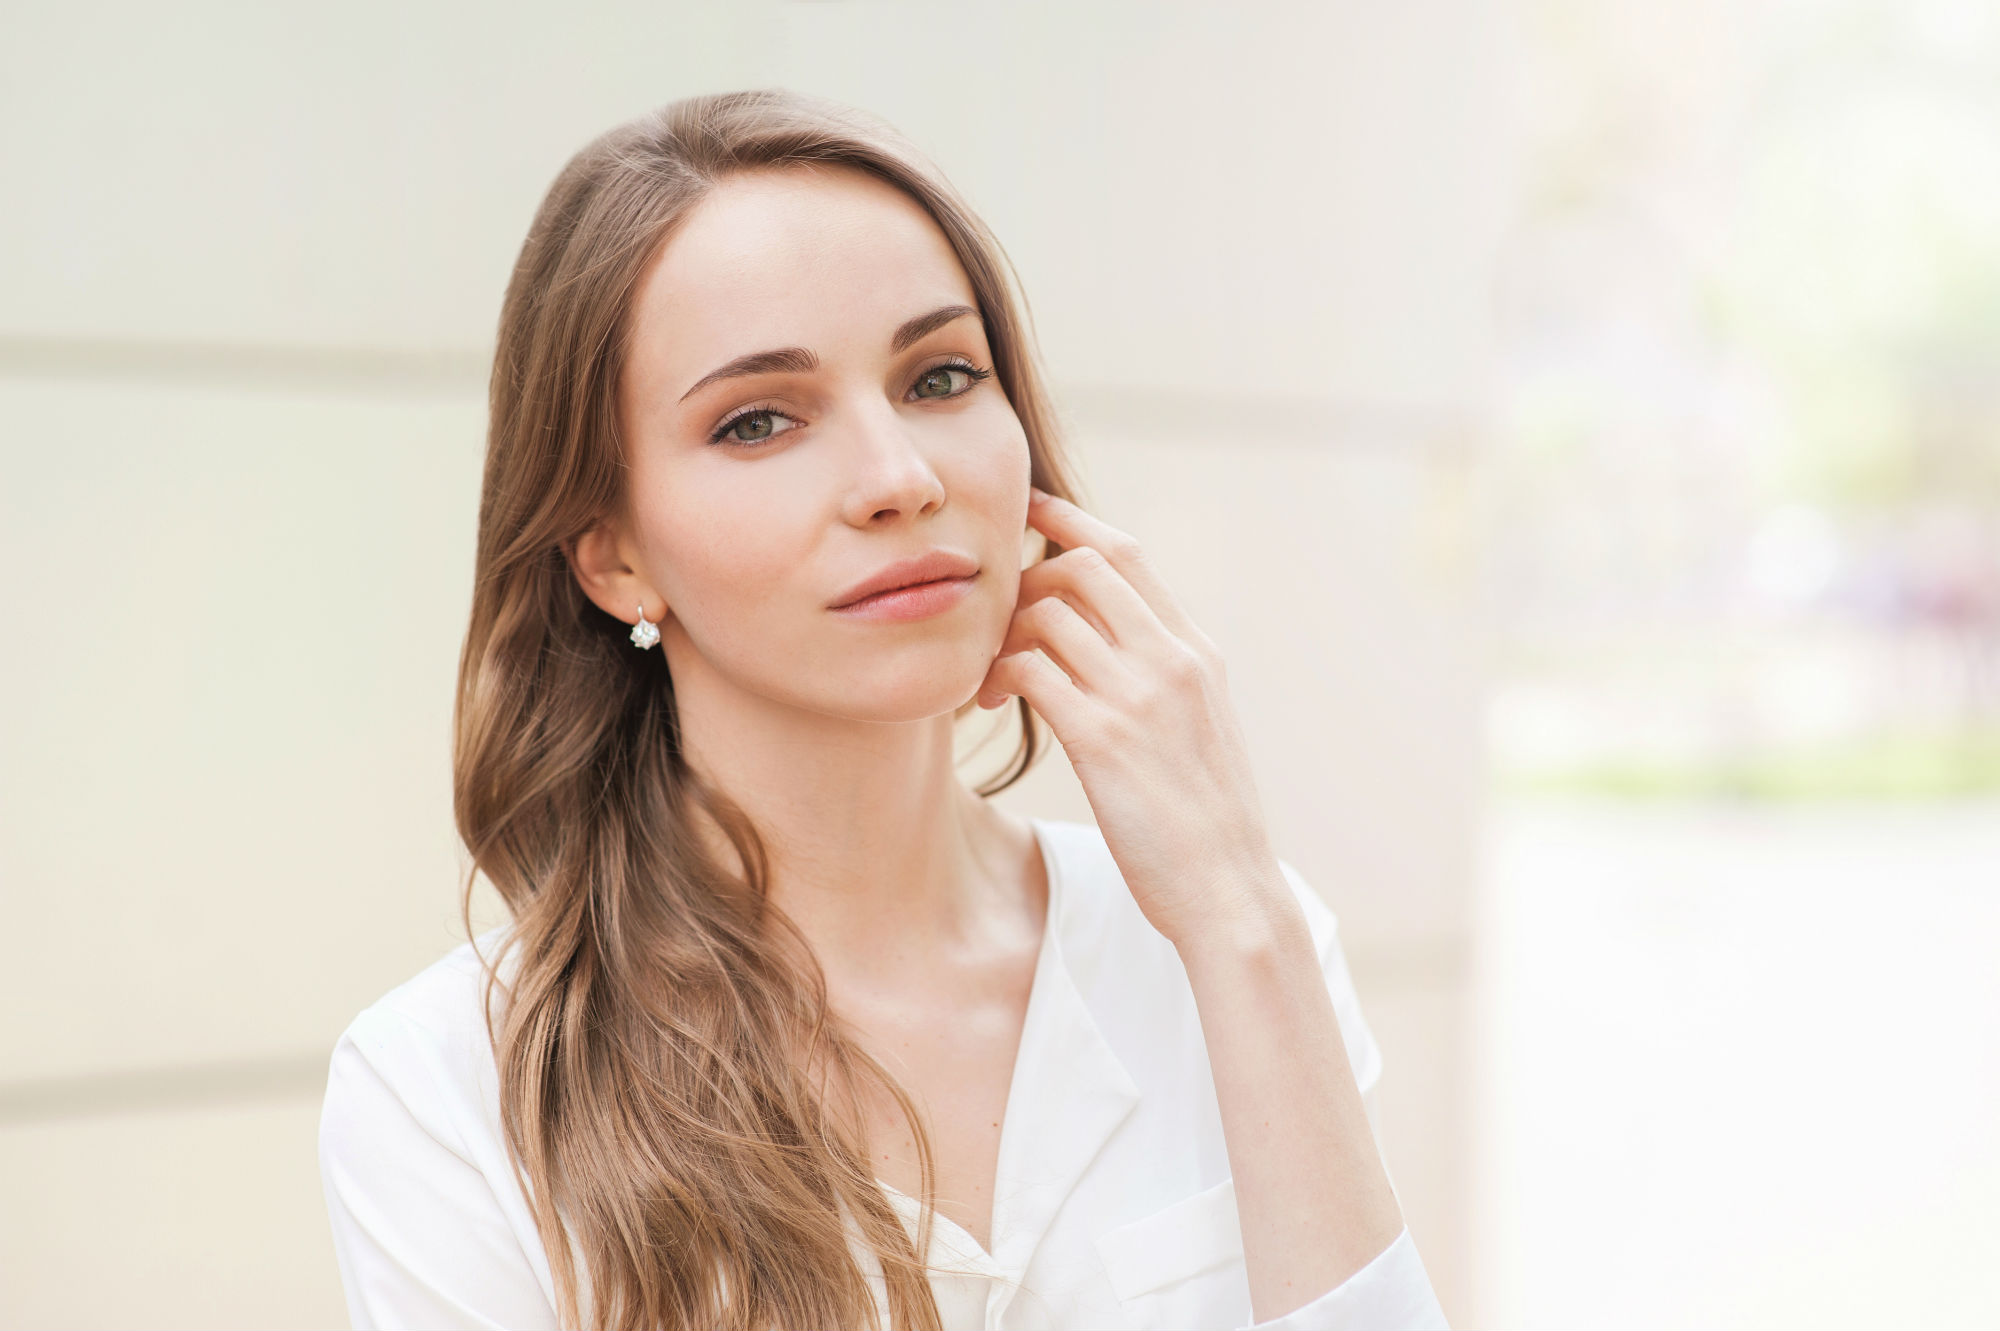 Face Slimming Procedures Without Surgery